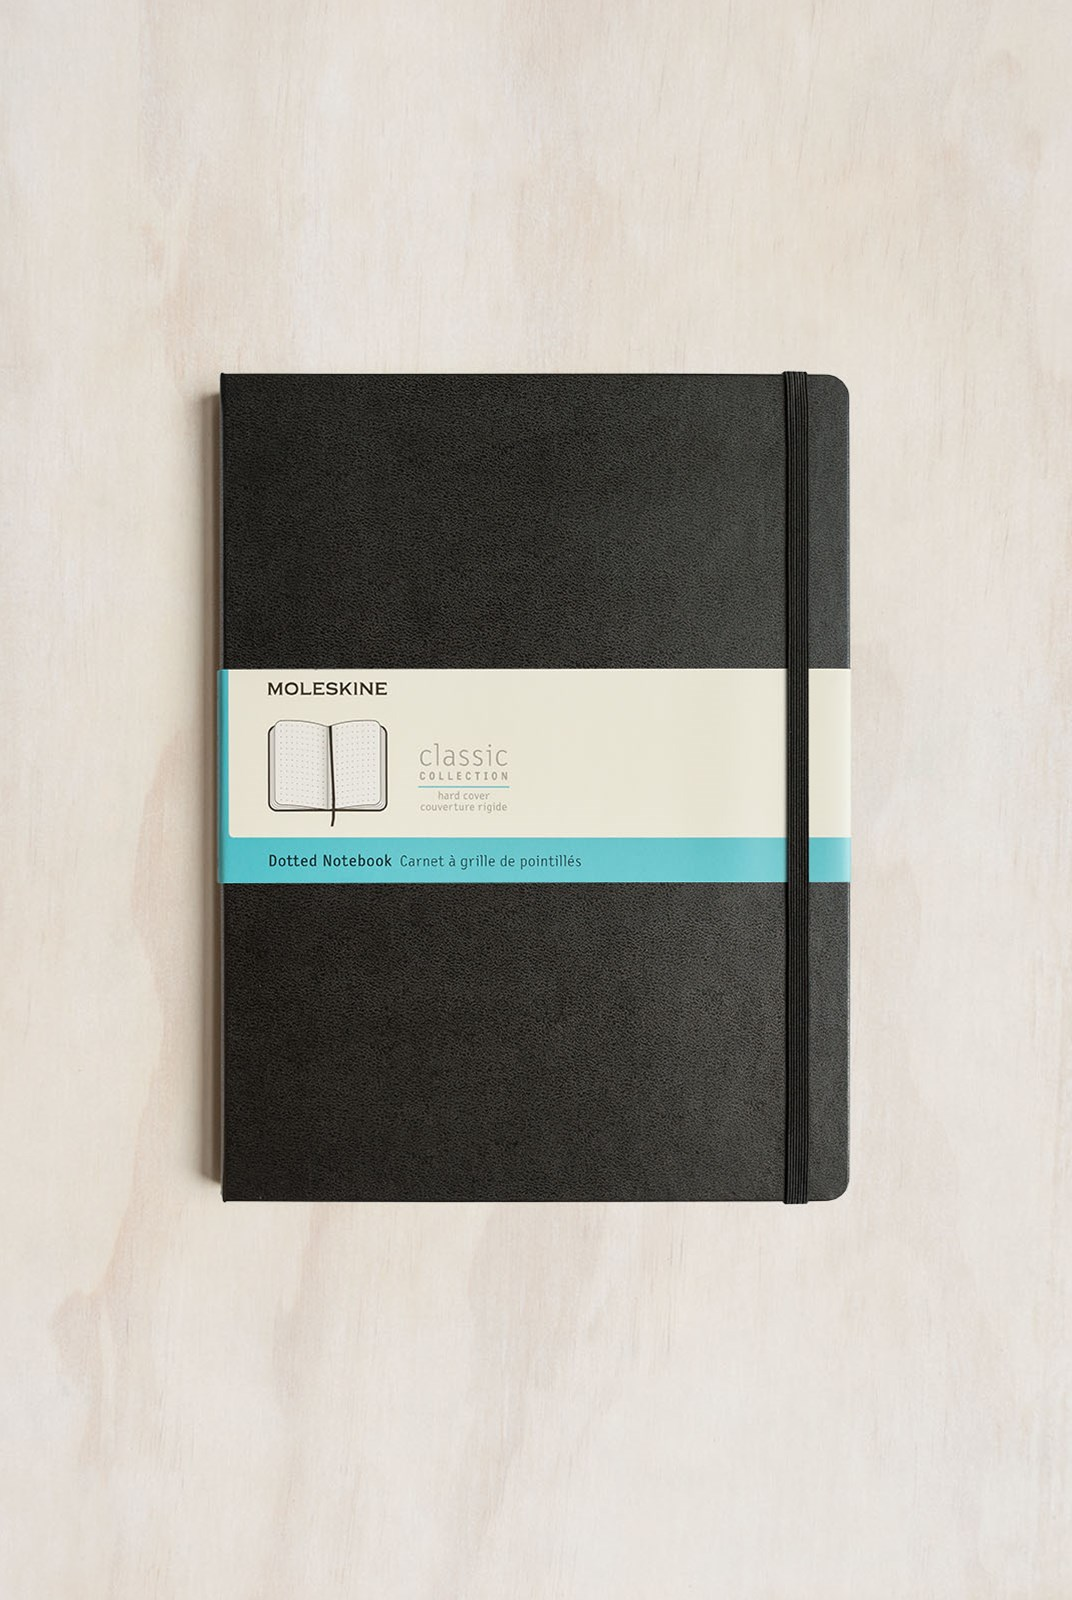 Moleskine - Classic Hard Cover Notebook - Dot Grid - Extra Large - Black